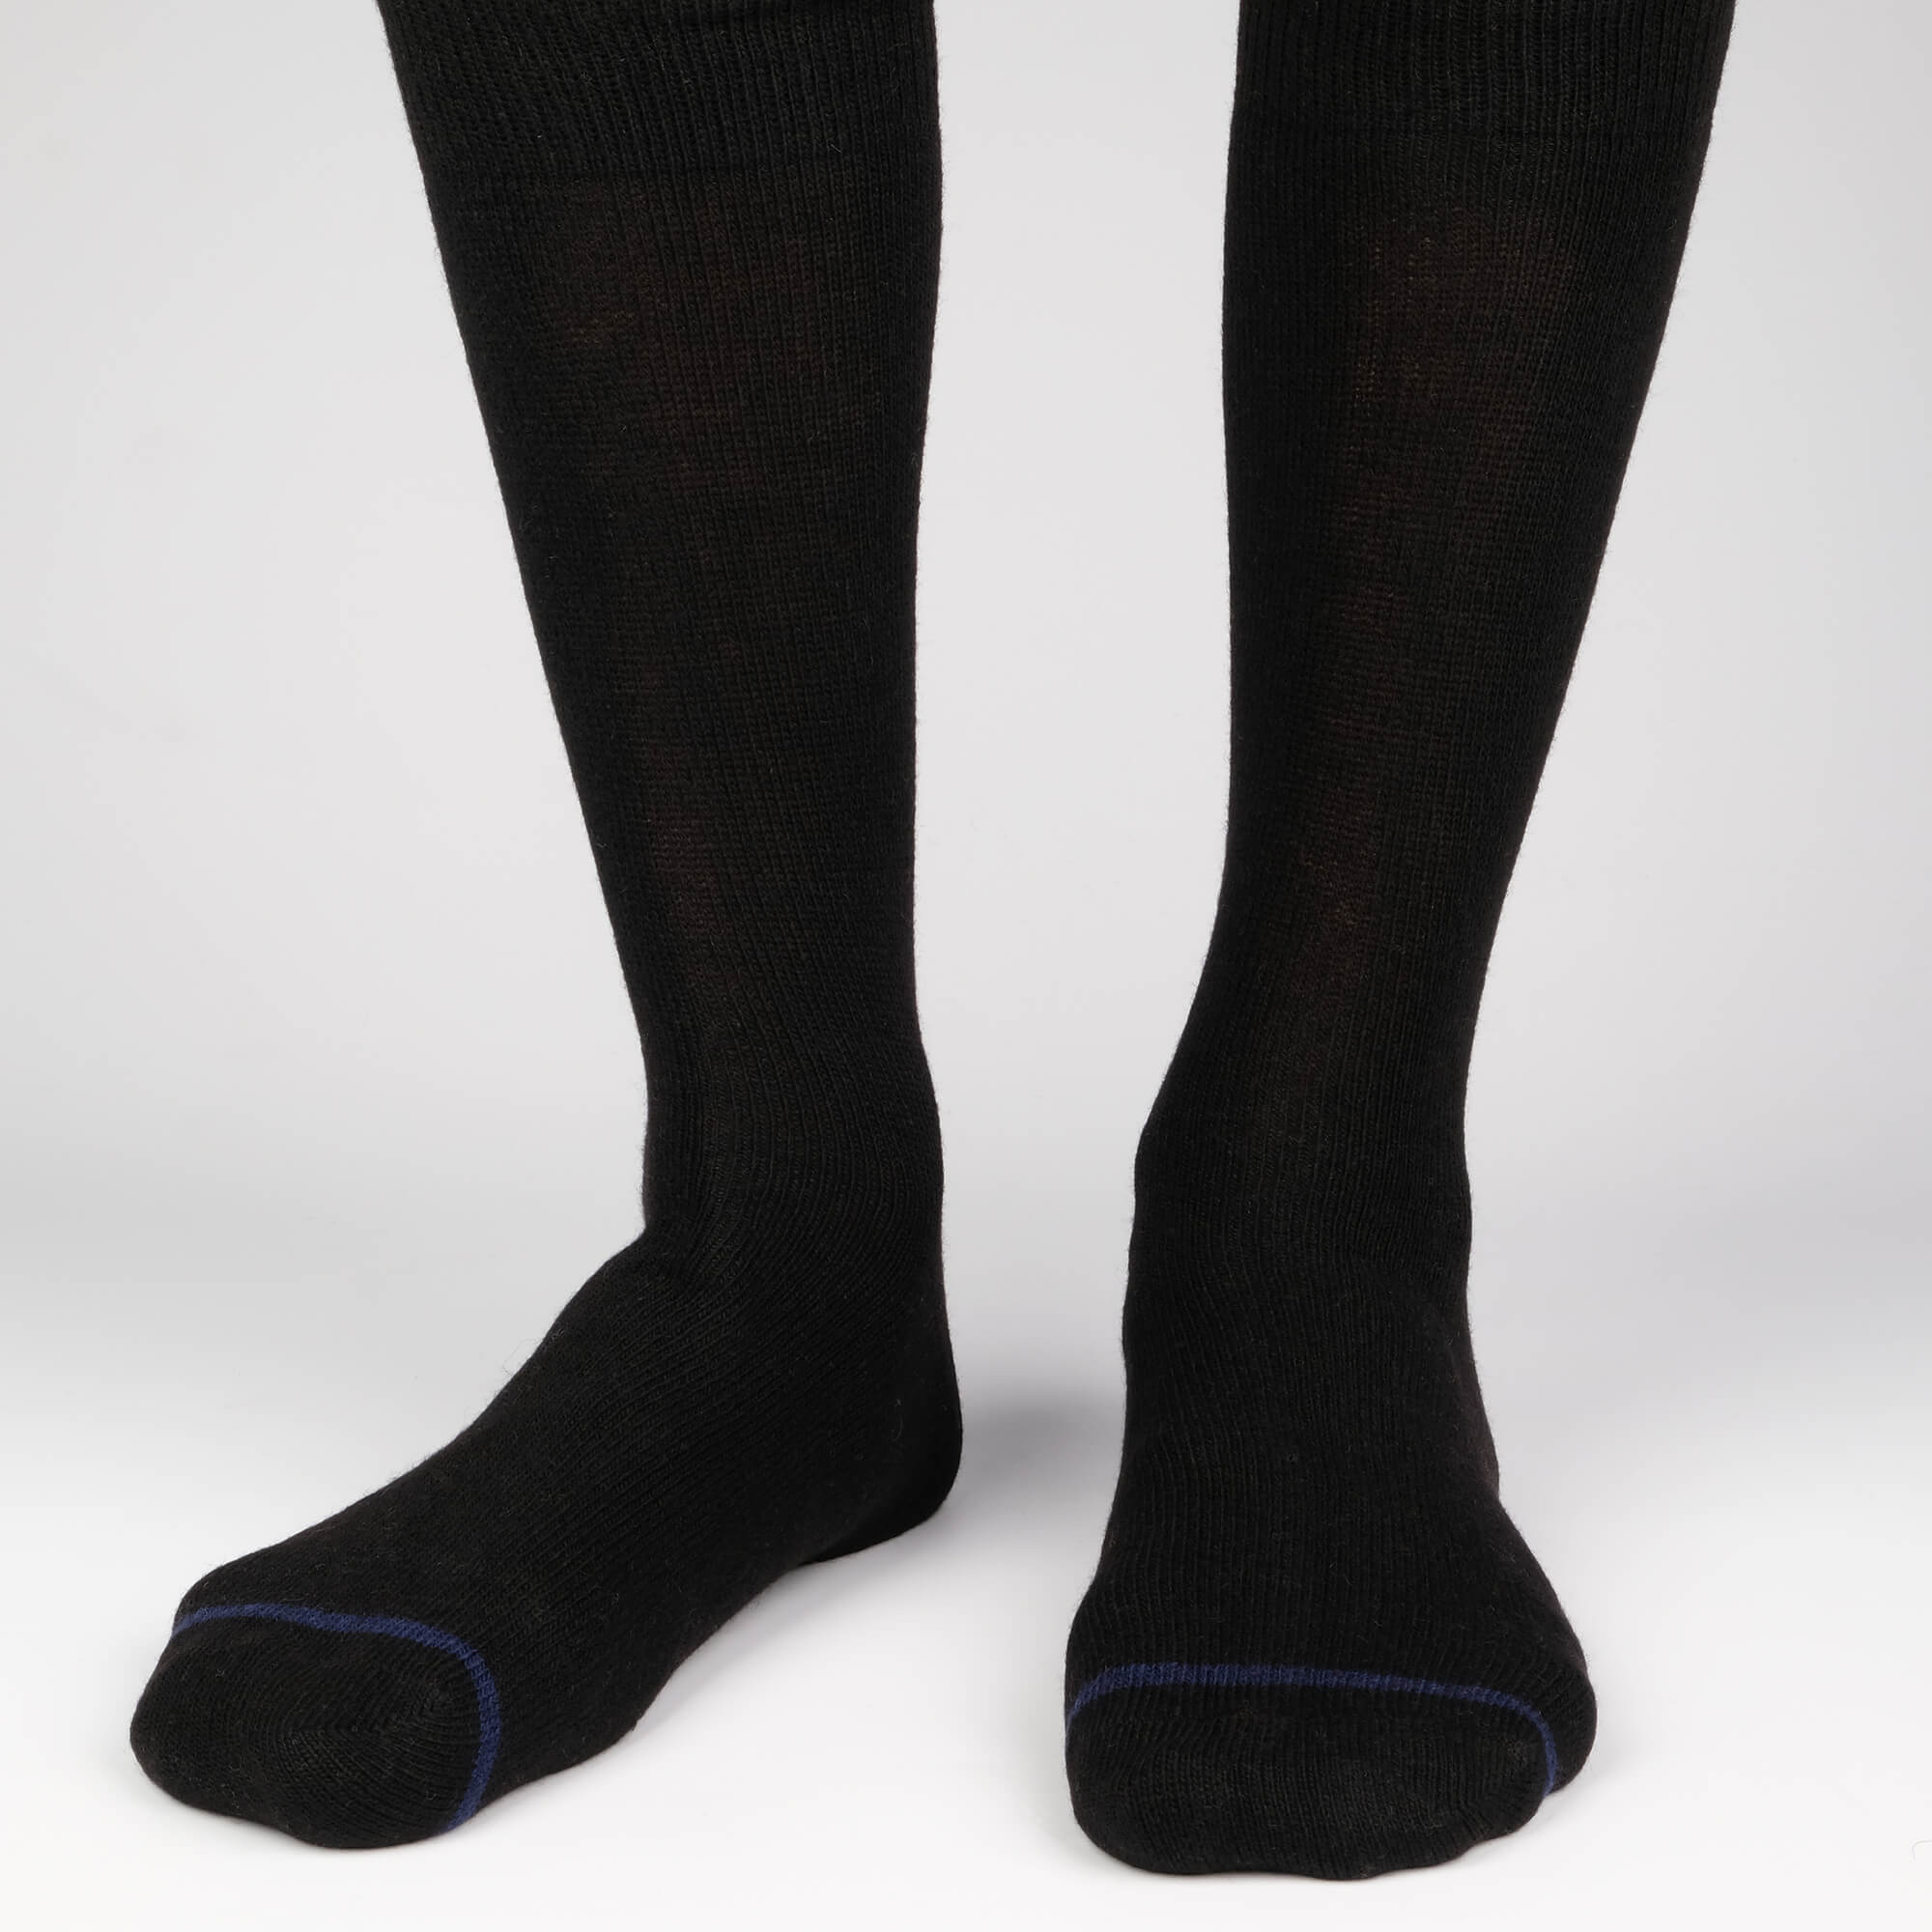 Mens Socks - Cashmere x Merino Men's Socks - Black⎪Etiquette Clothiers